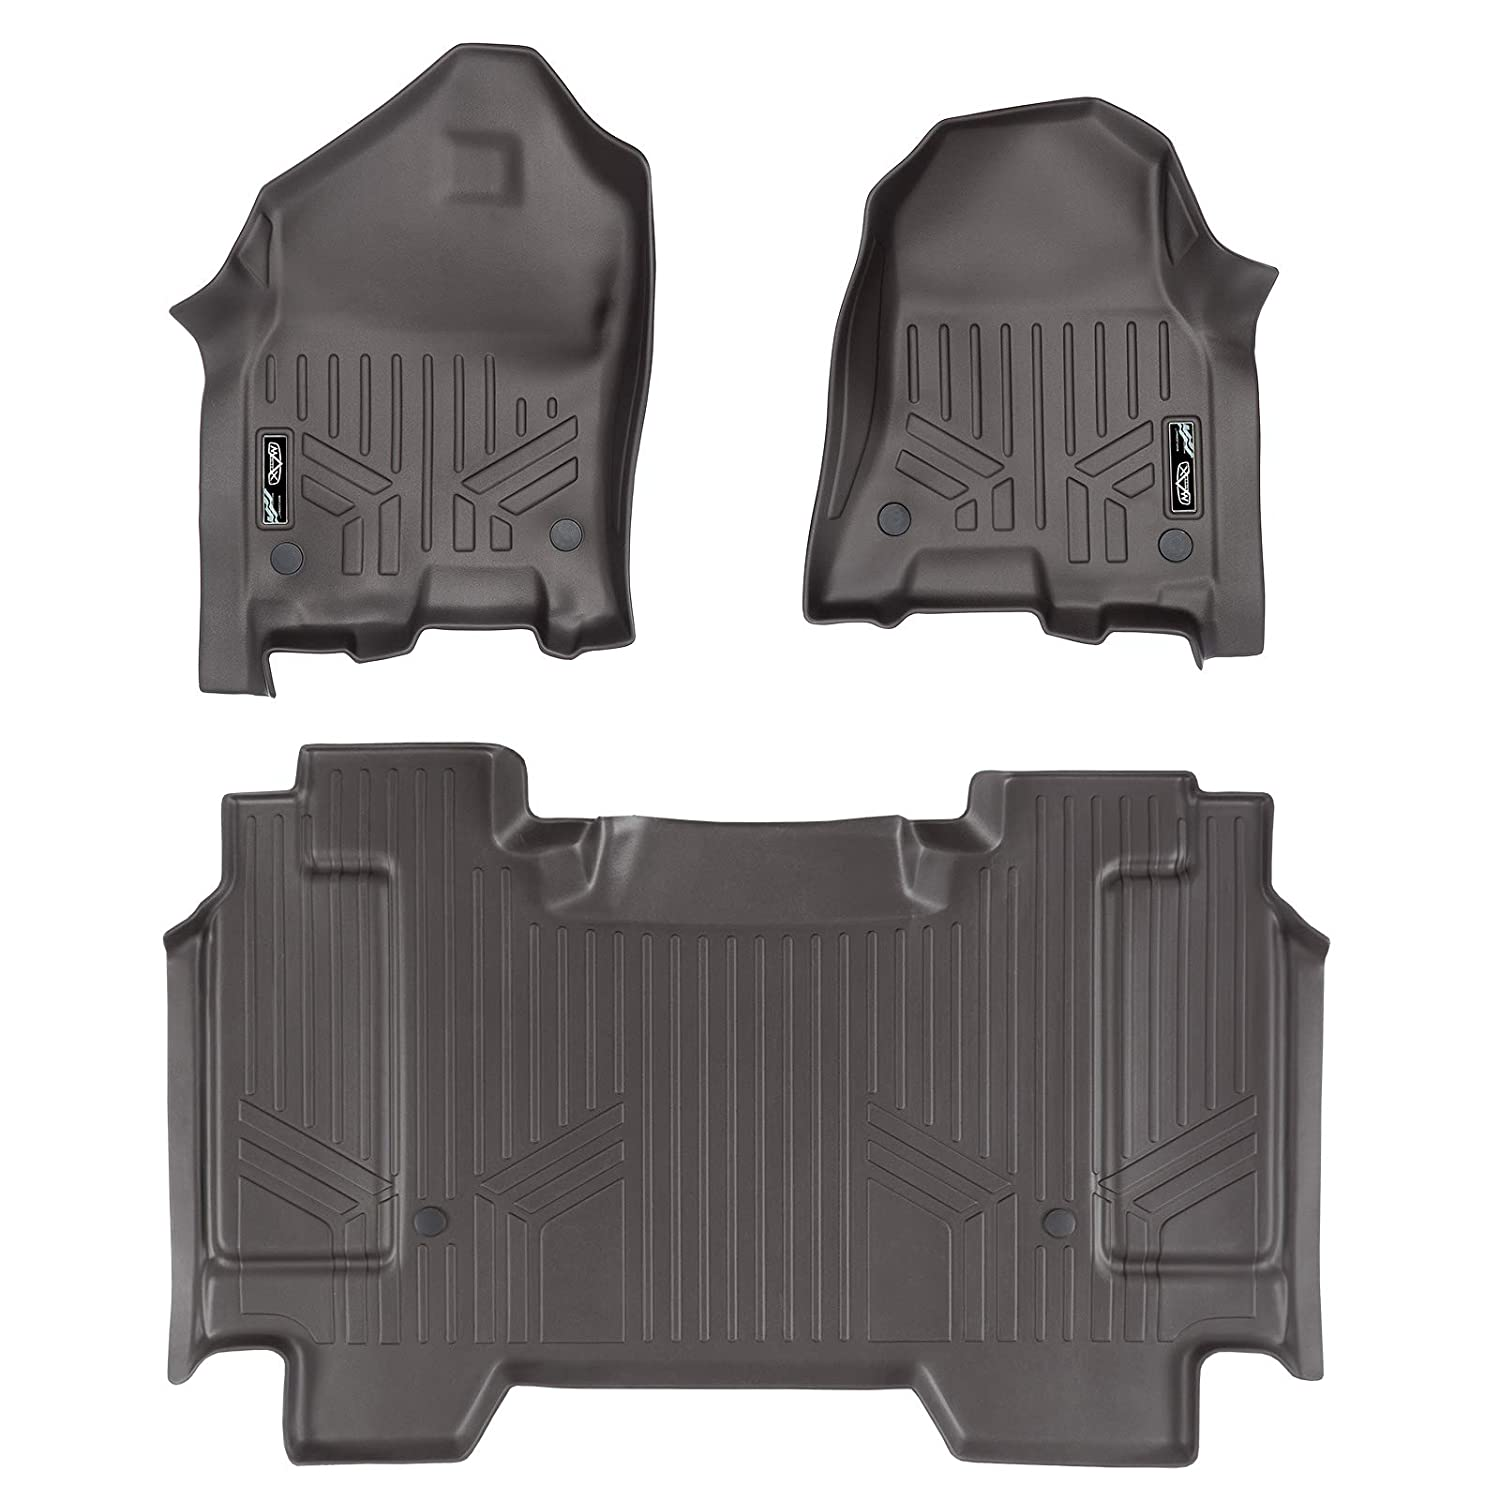 SMARTLINER Custom Fit Floor Mats 2 Row Liner Set Cocoa for 2019 Ram 1500 Crew Cab with 1st Row Captain or Bench Seats